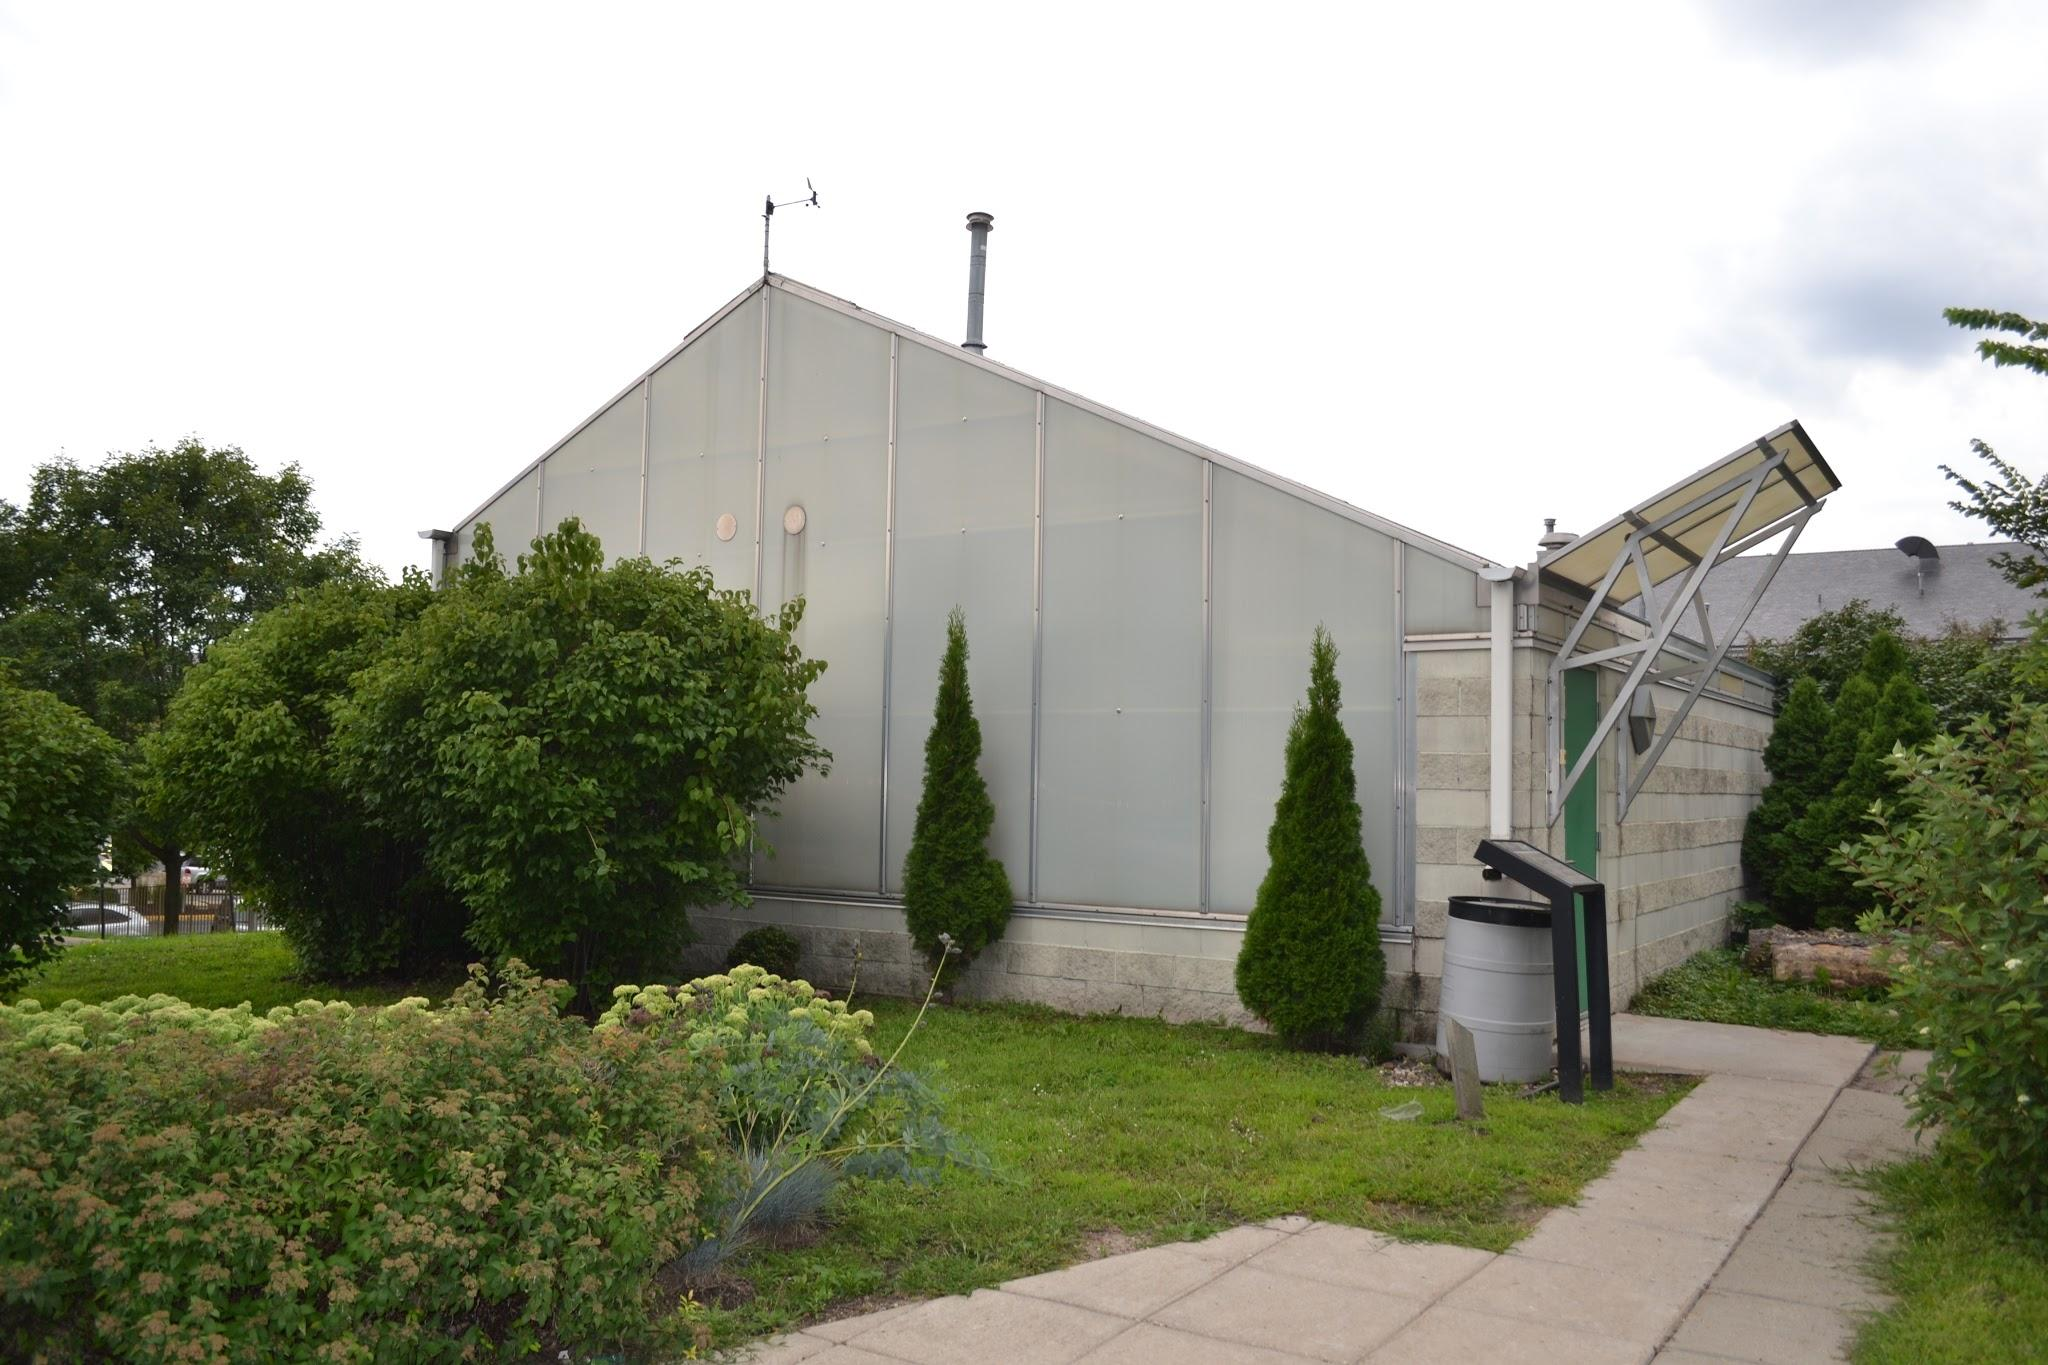 Green light for campus greenhouse renovation